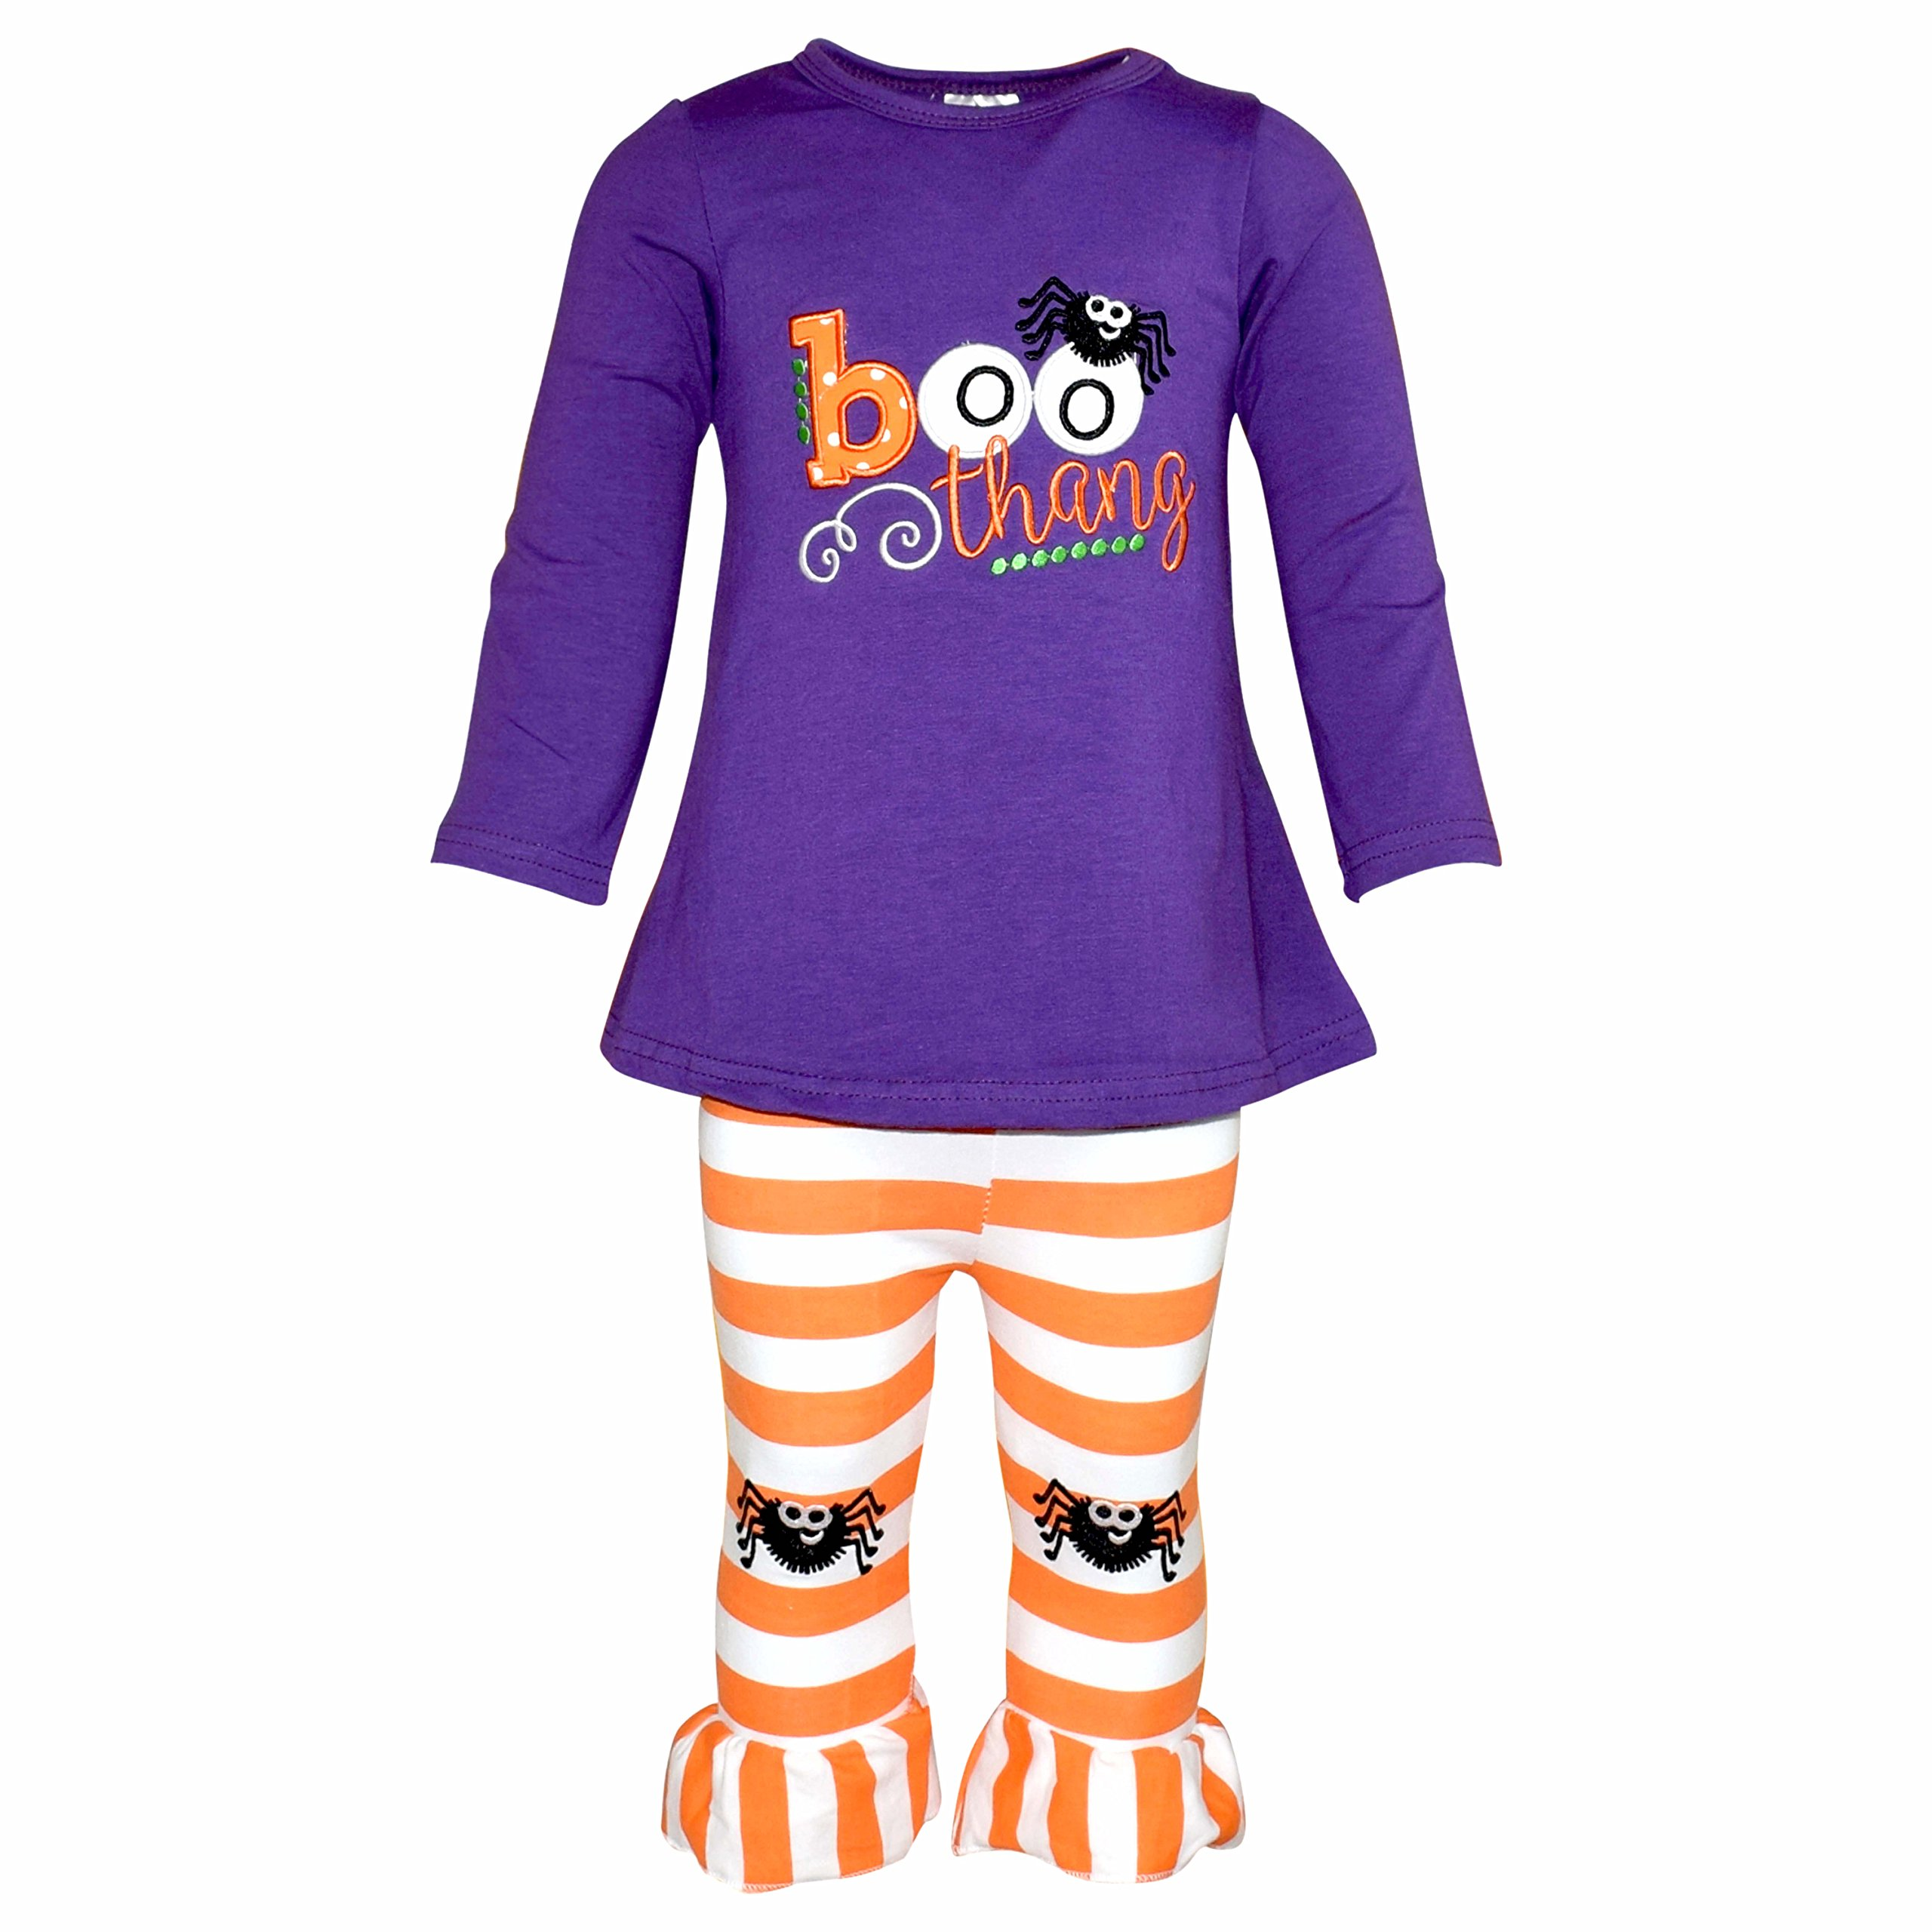 Unique Baby Girls Boo Thang Halloween Outfit with Spider Leggings (6/XL, Purple)